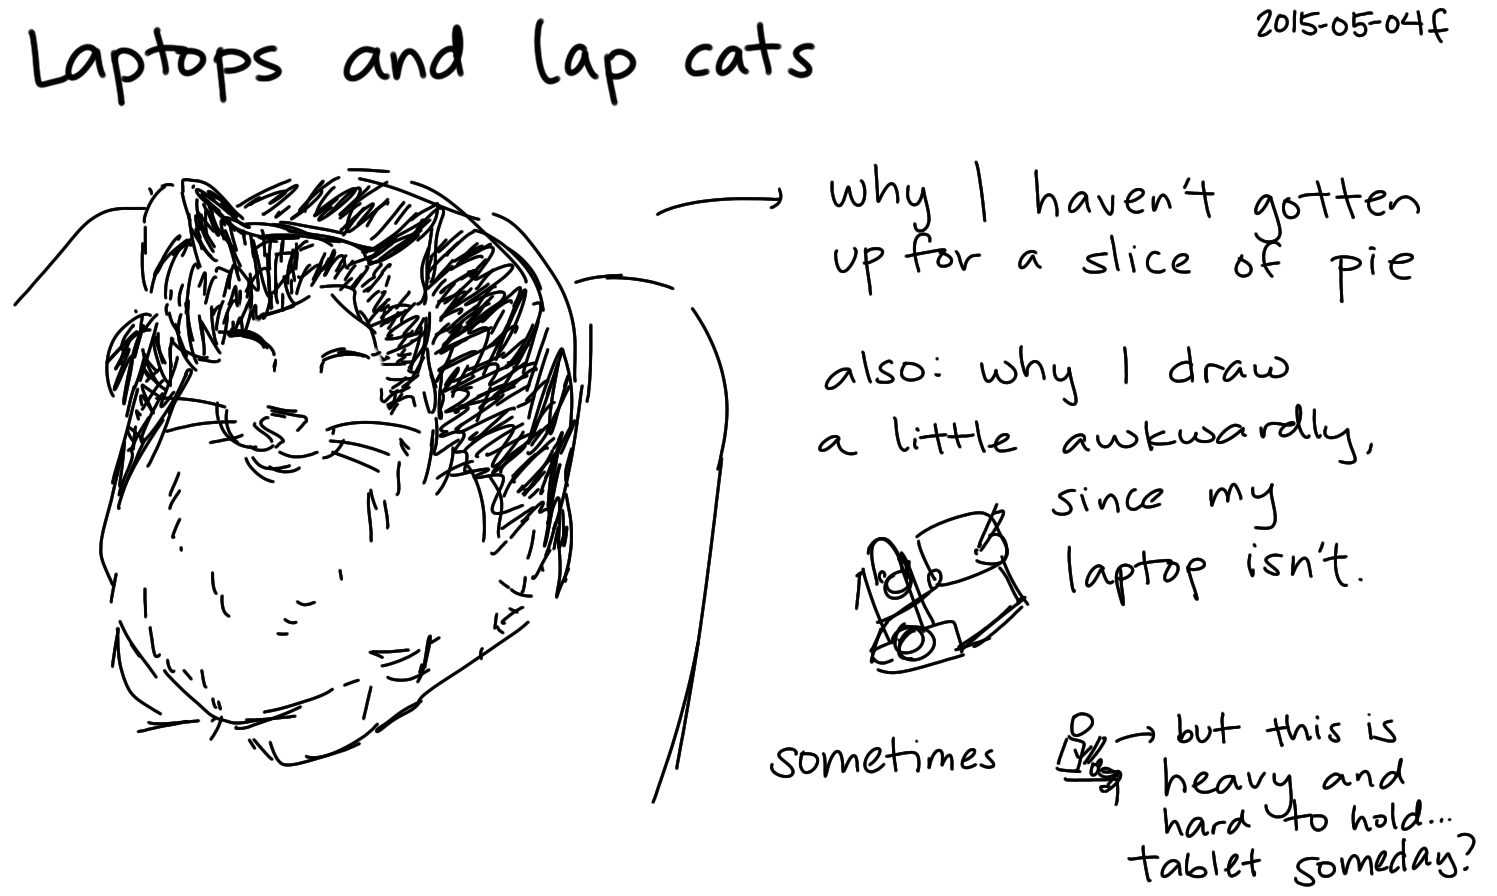 2015-05-04f Laptops and lap cats -- index card #life #cats.png